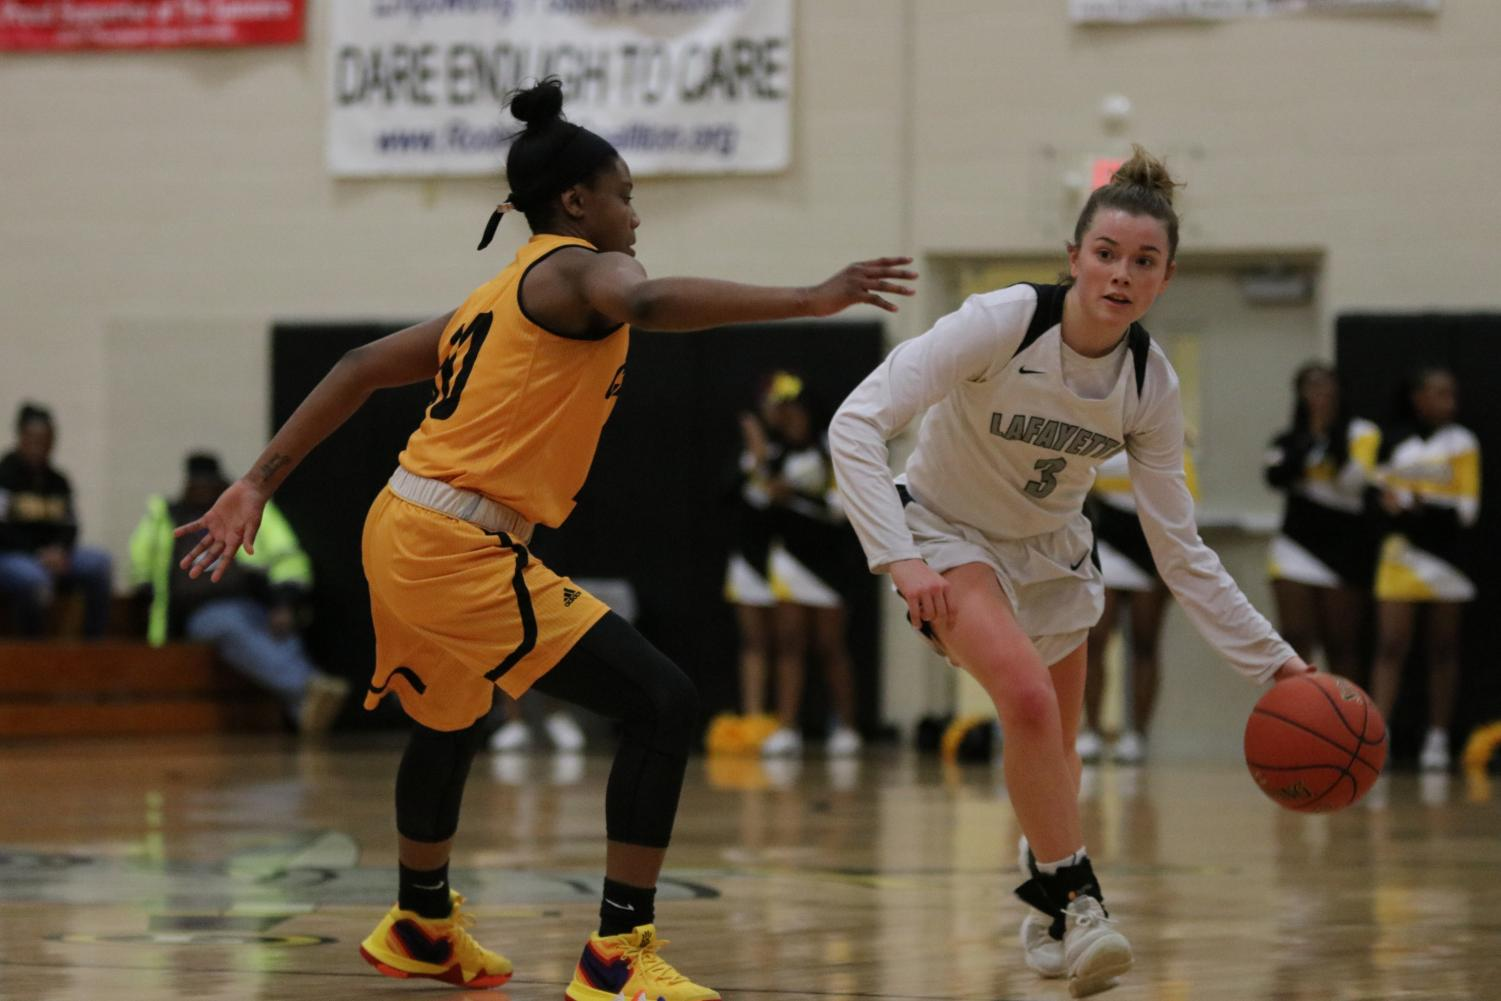 On the Jan. 9 game against Hazelwood Central, senior Sydnie Wolf dribbles the ball down the lane. The Lancers lost the game 48-41.